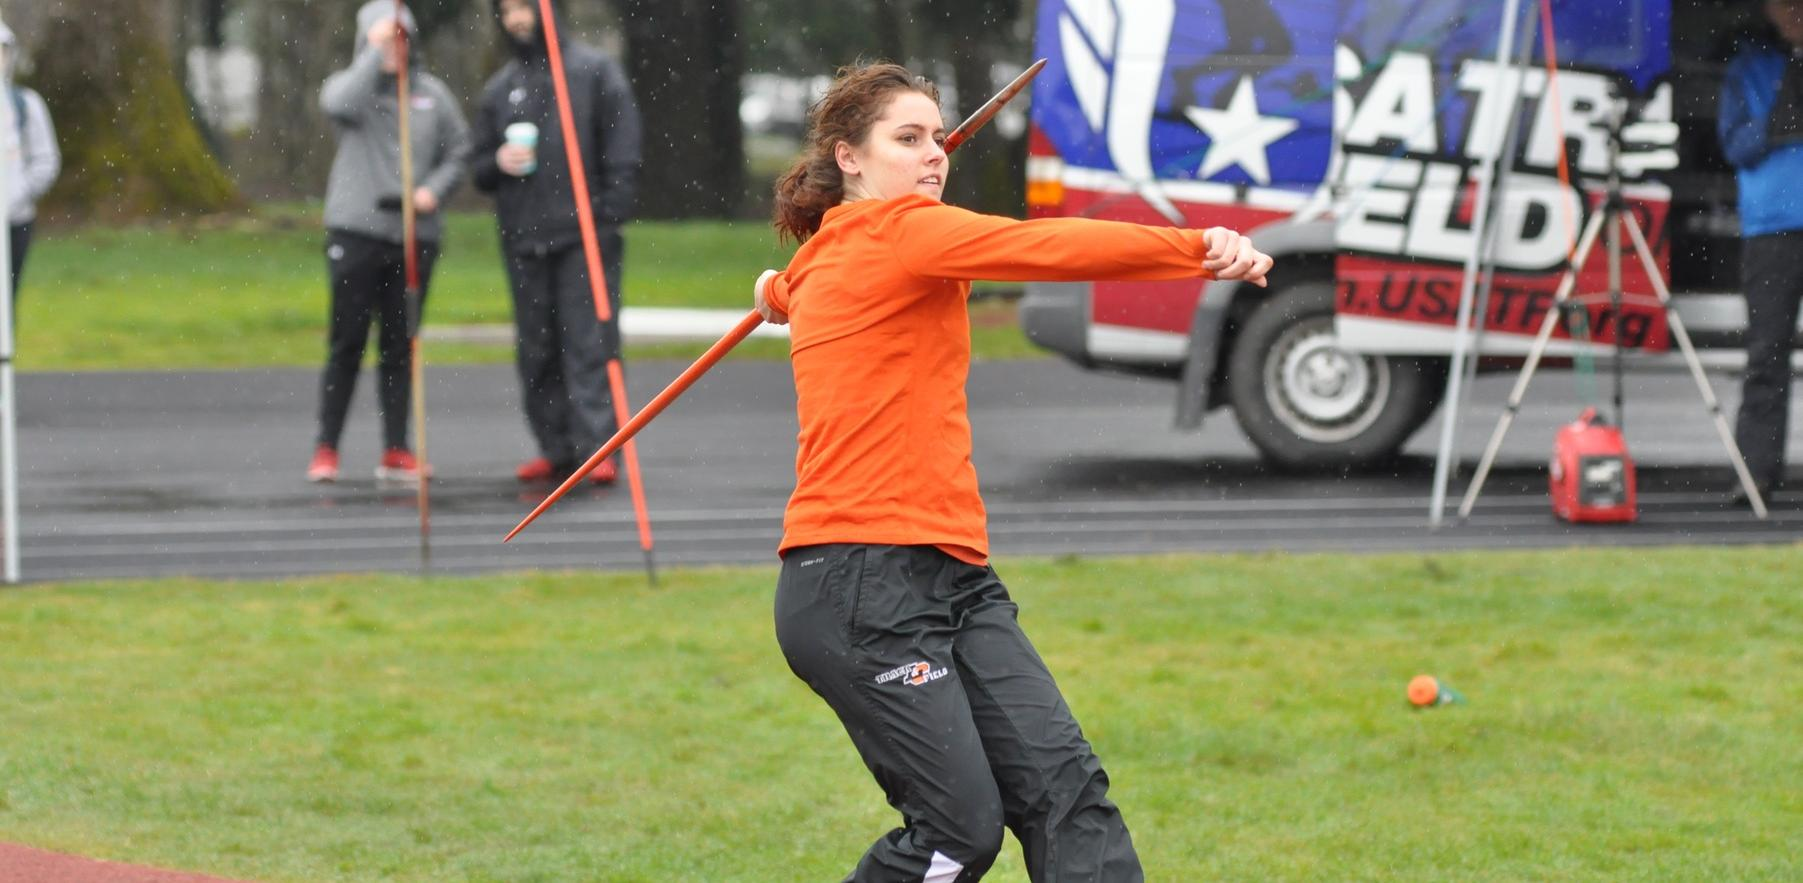 Taylor competes at Boxer Combined Event